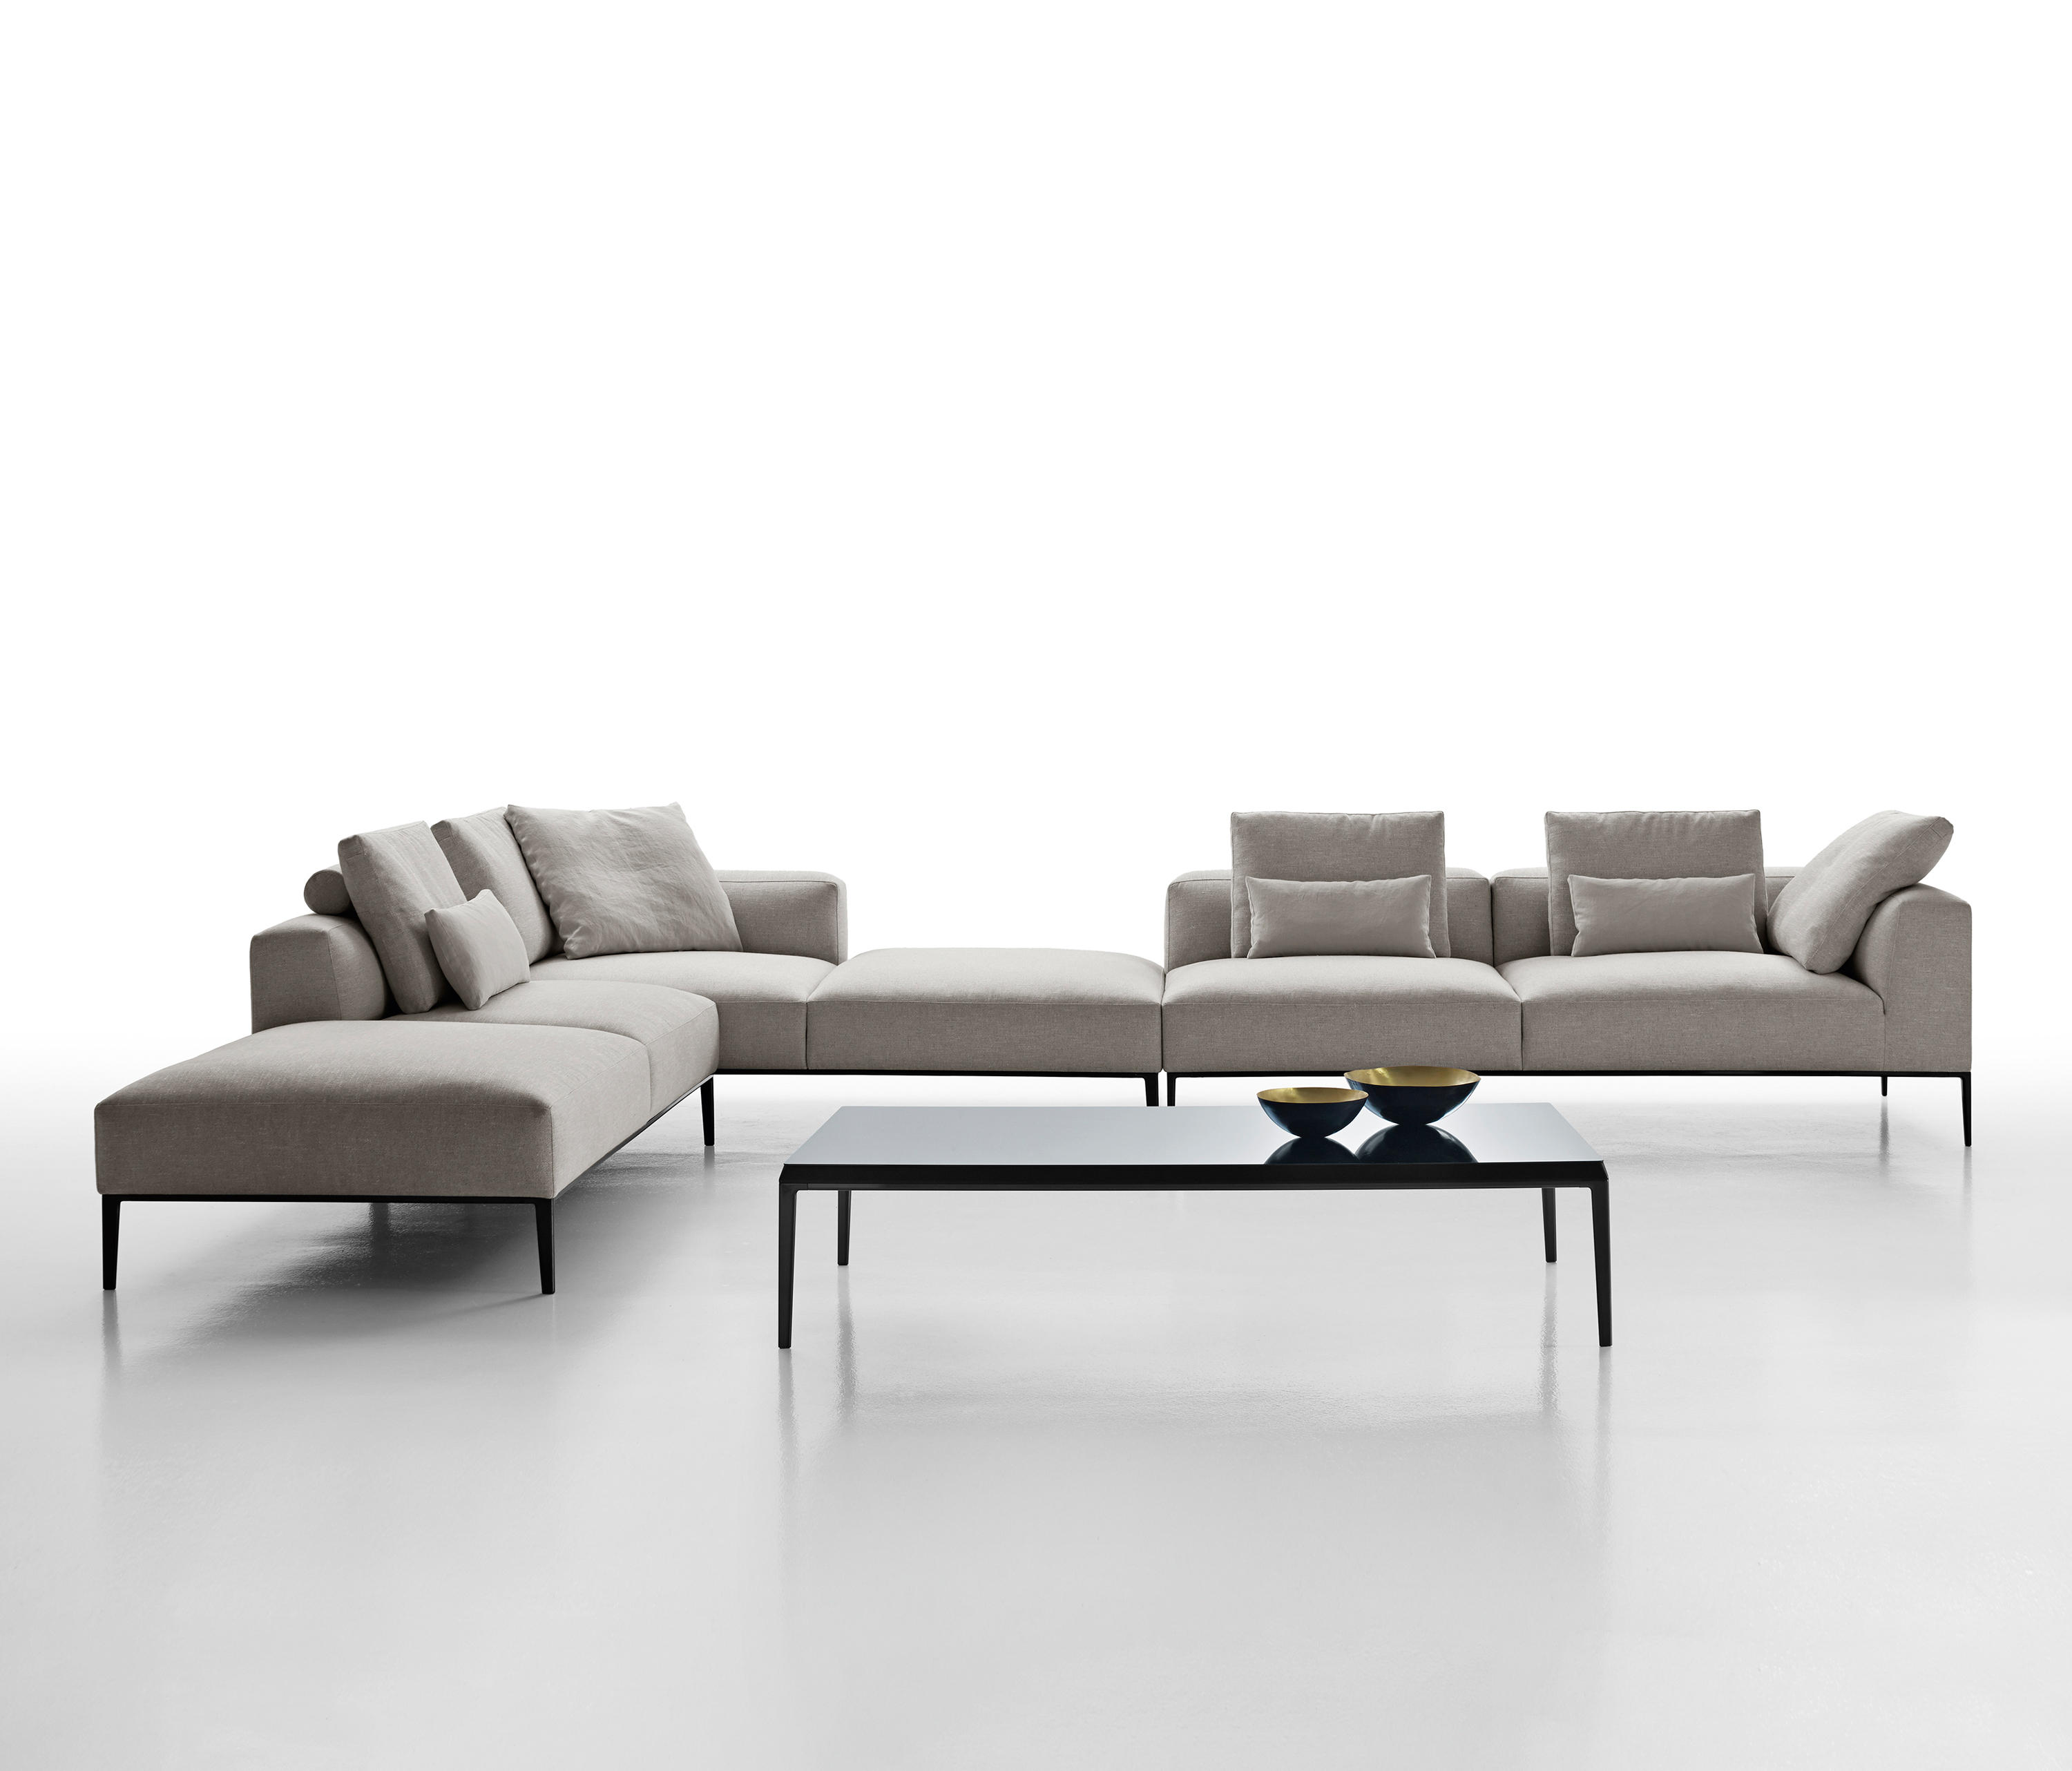 b italia sofa bend preis sofa the honoroak. Black Bedroom Furniture Sets. Home Design Ideas